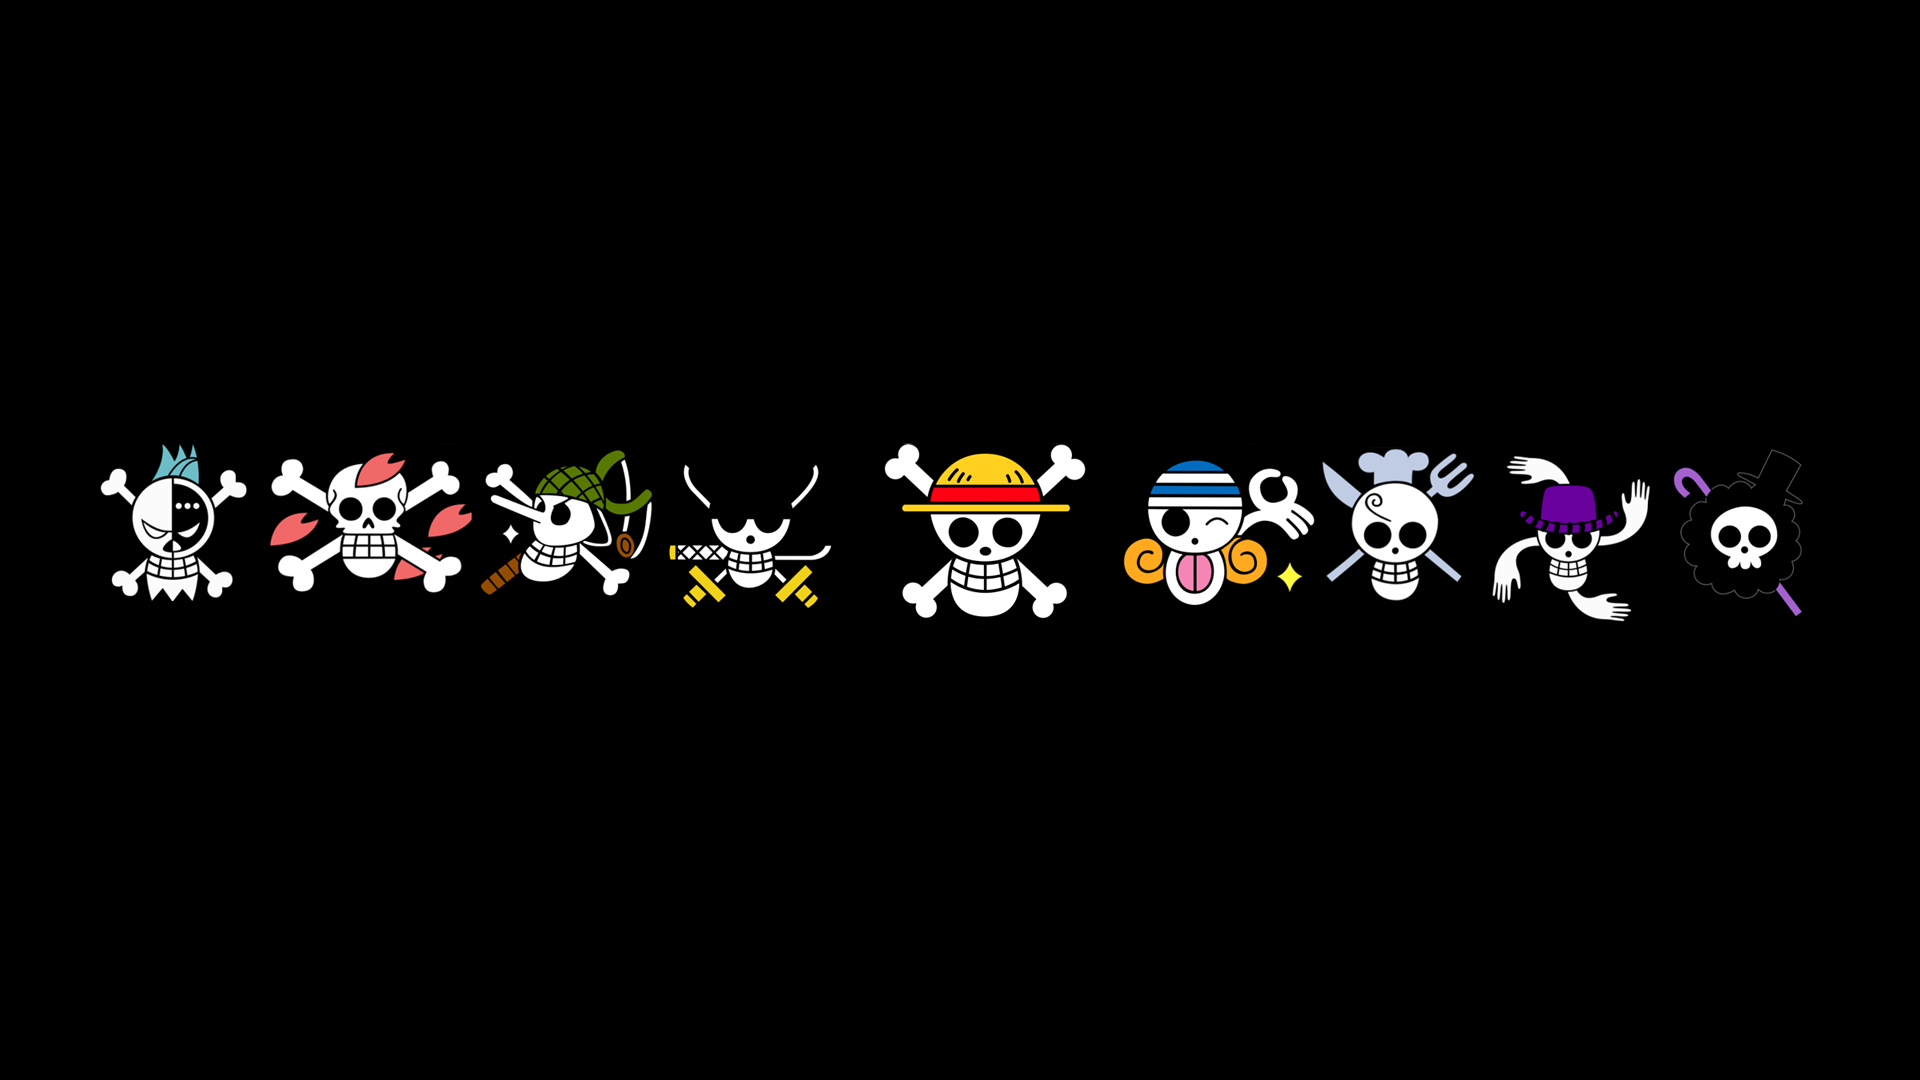 One Piece Hd Wallpaper Zerochan Anime Image Board